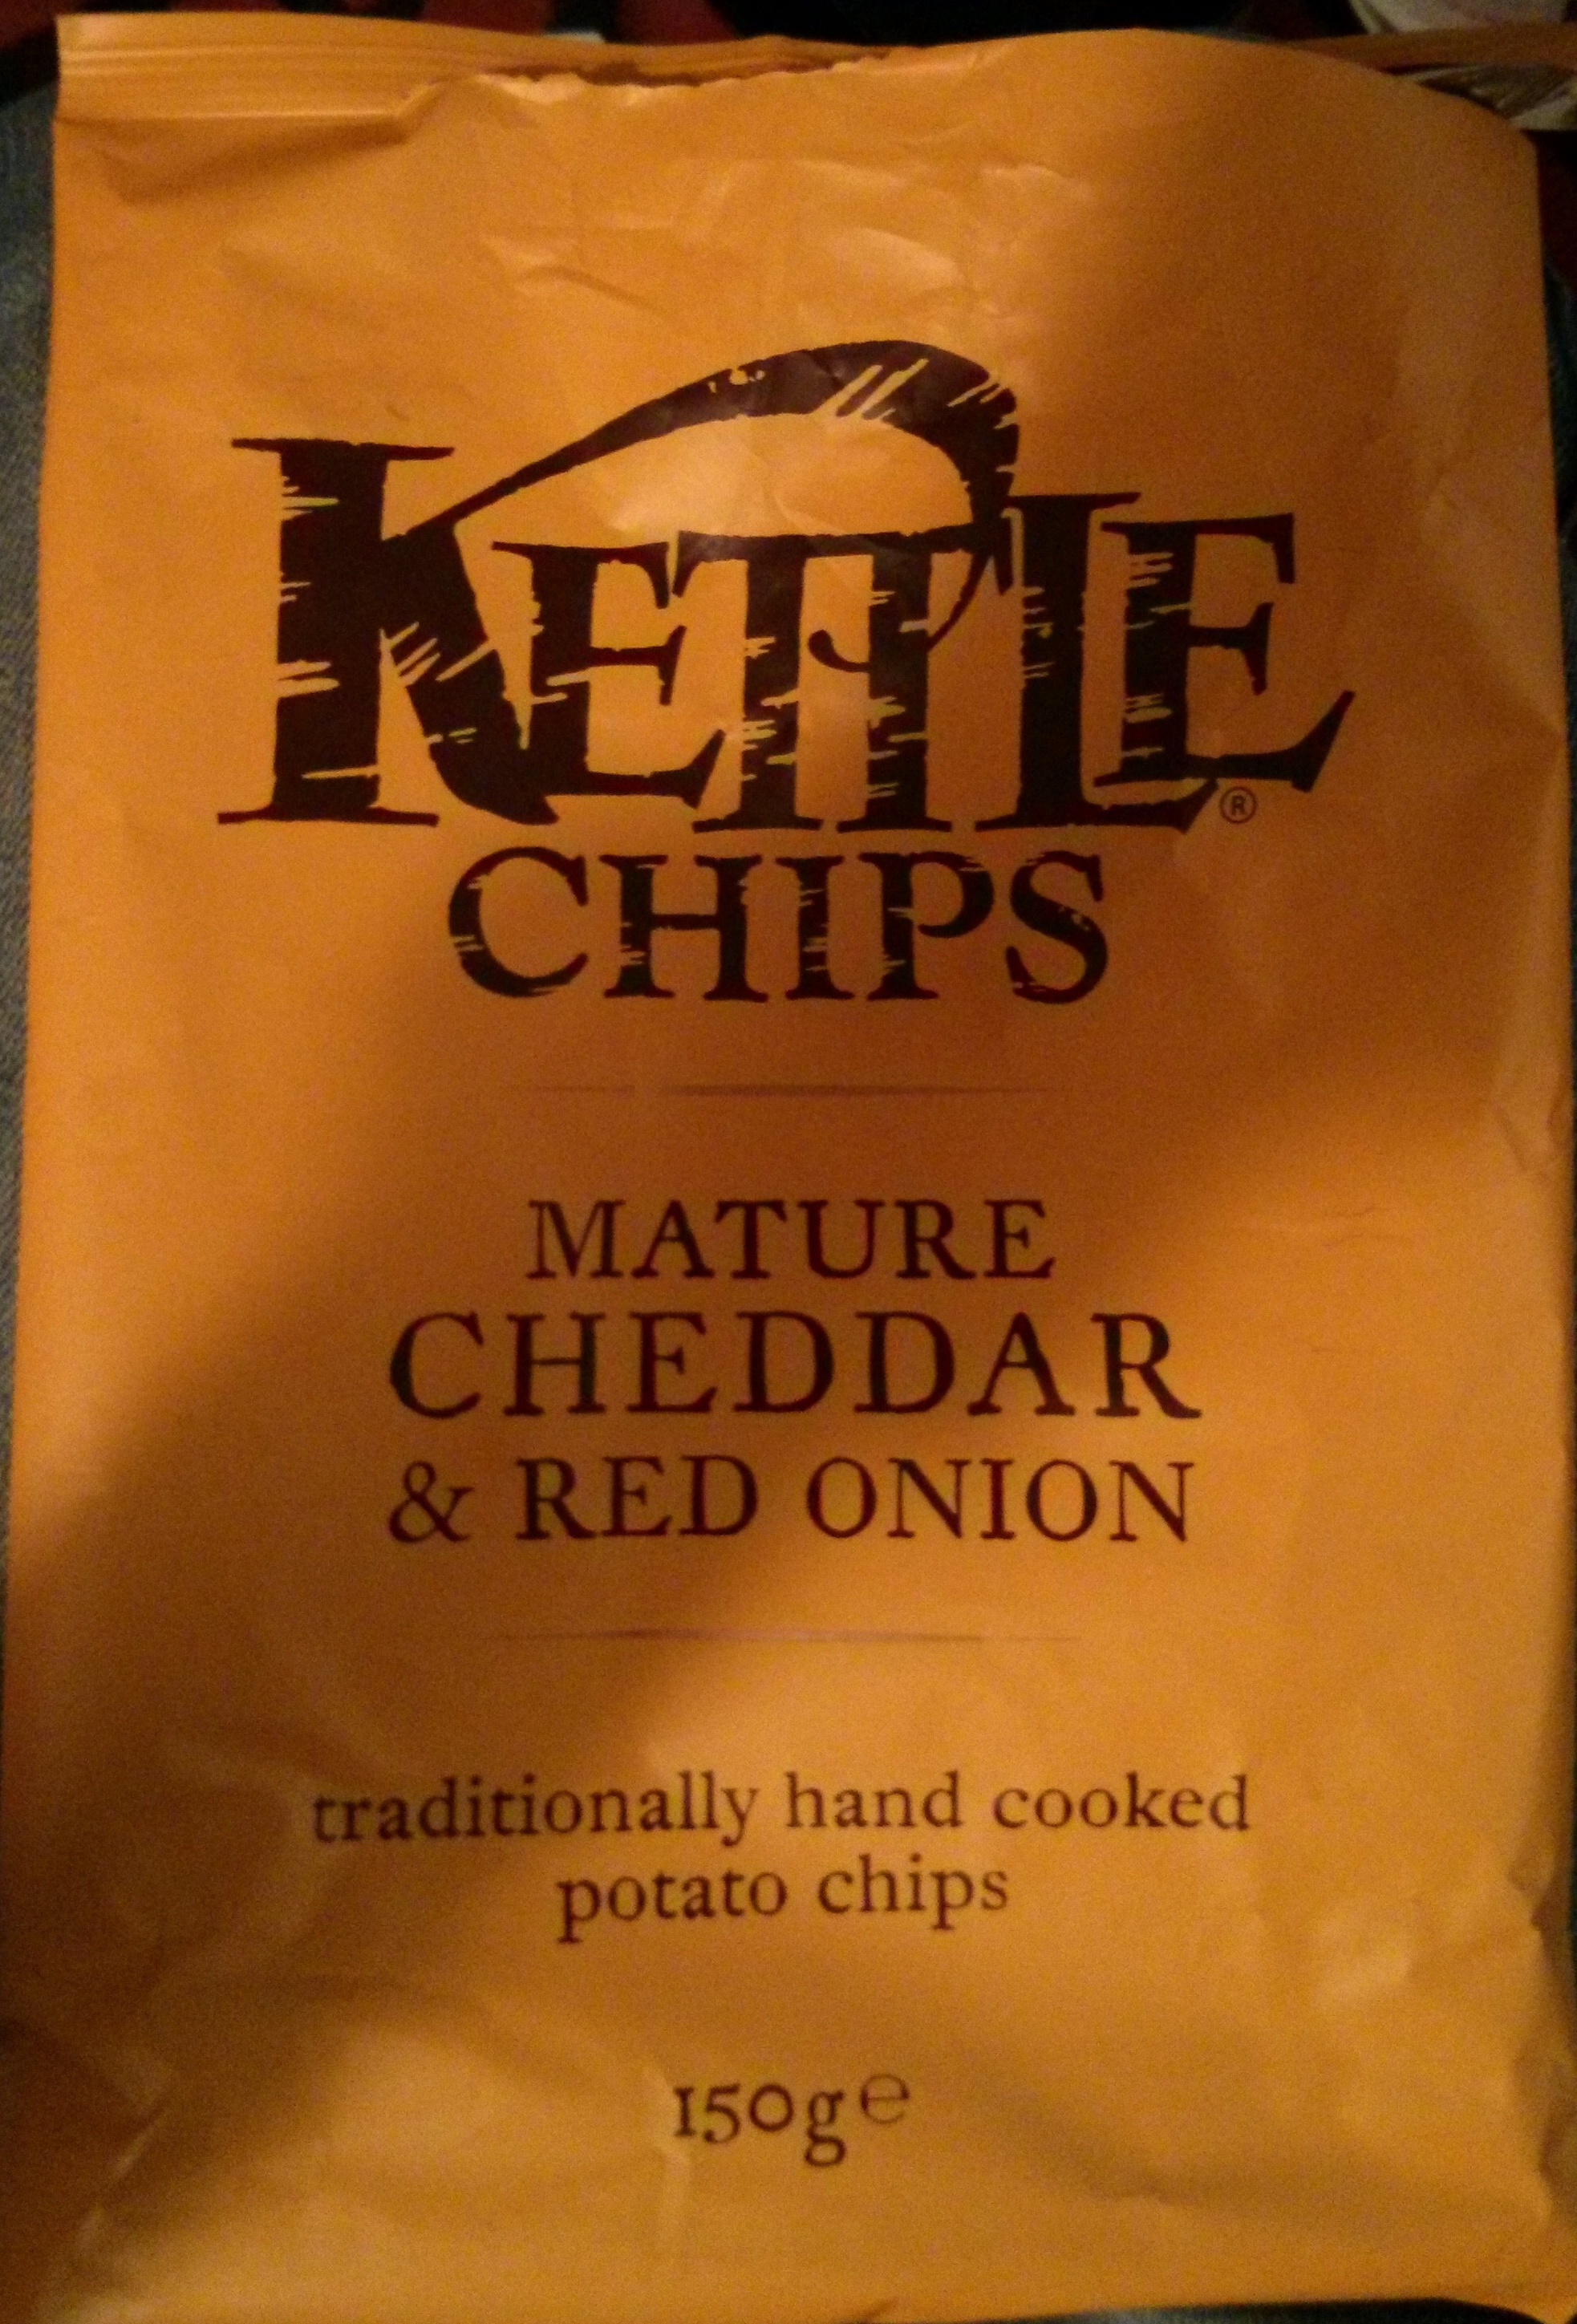 Mature Cheddar & Red Onion - Product